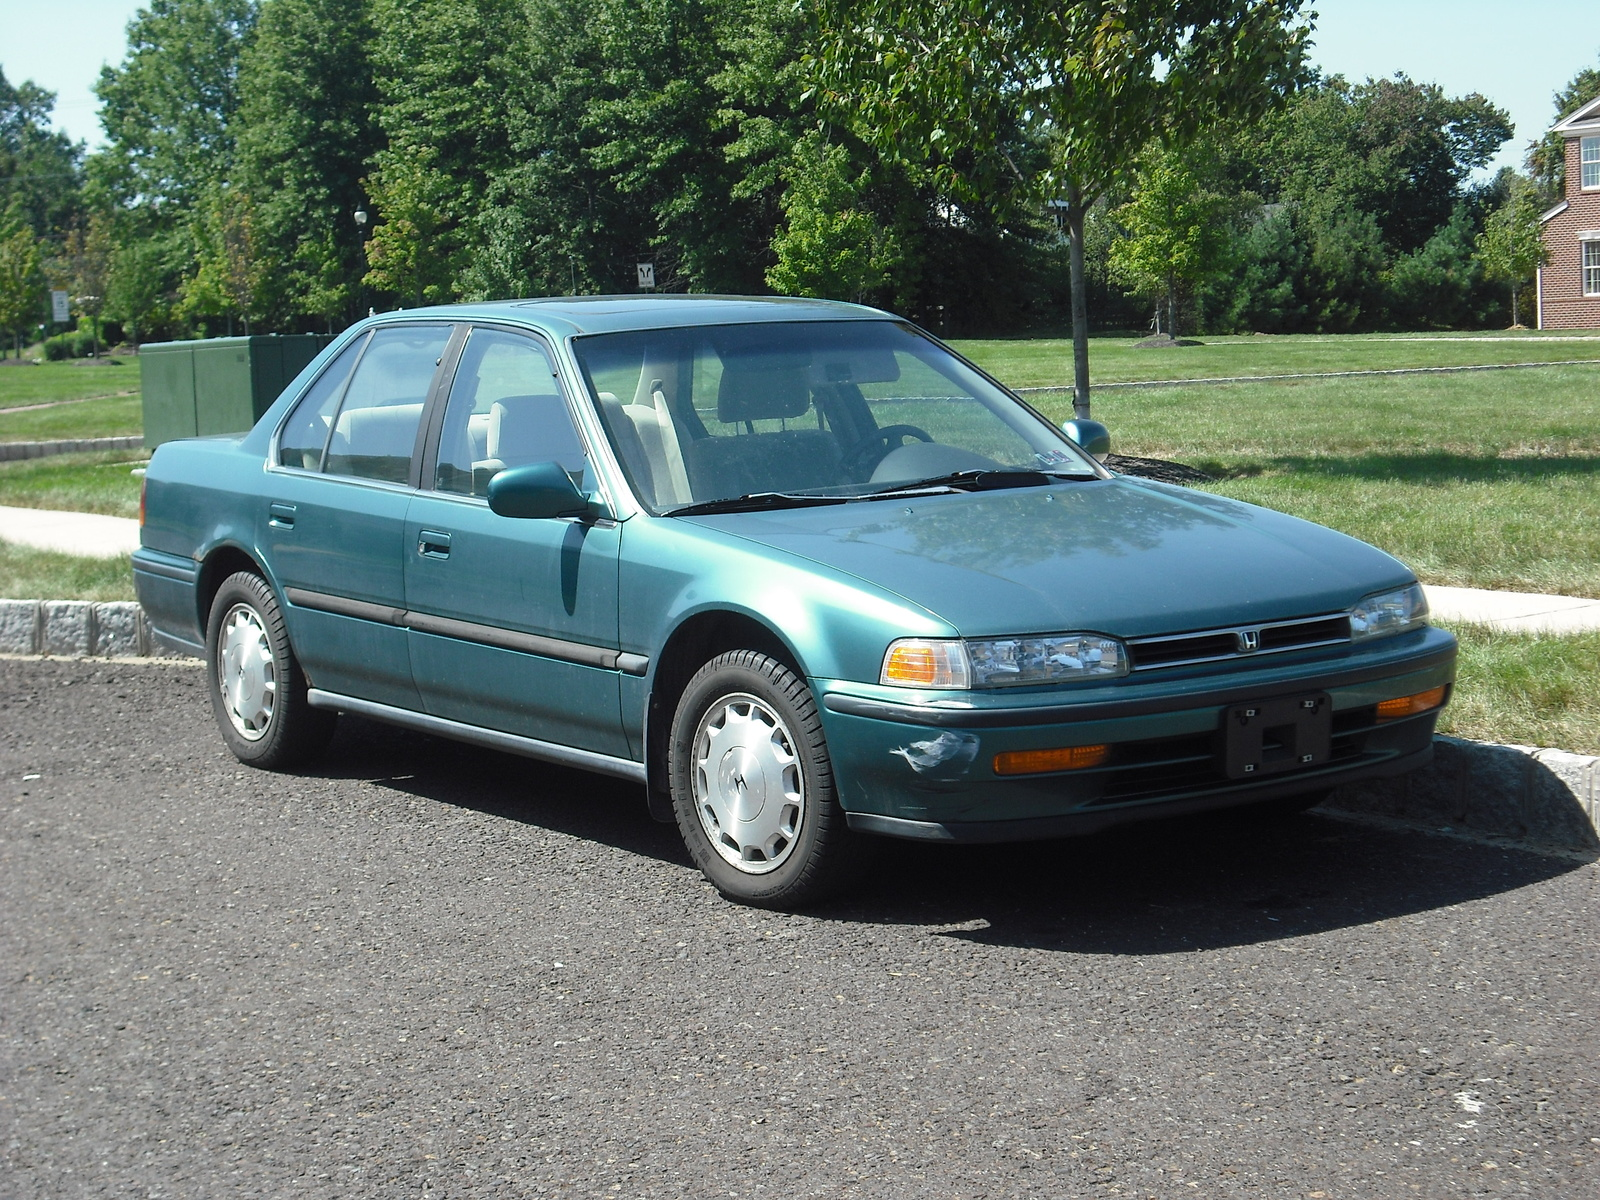 Picture of 1993 Honda Accord 4 Dr EX Sedan